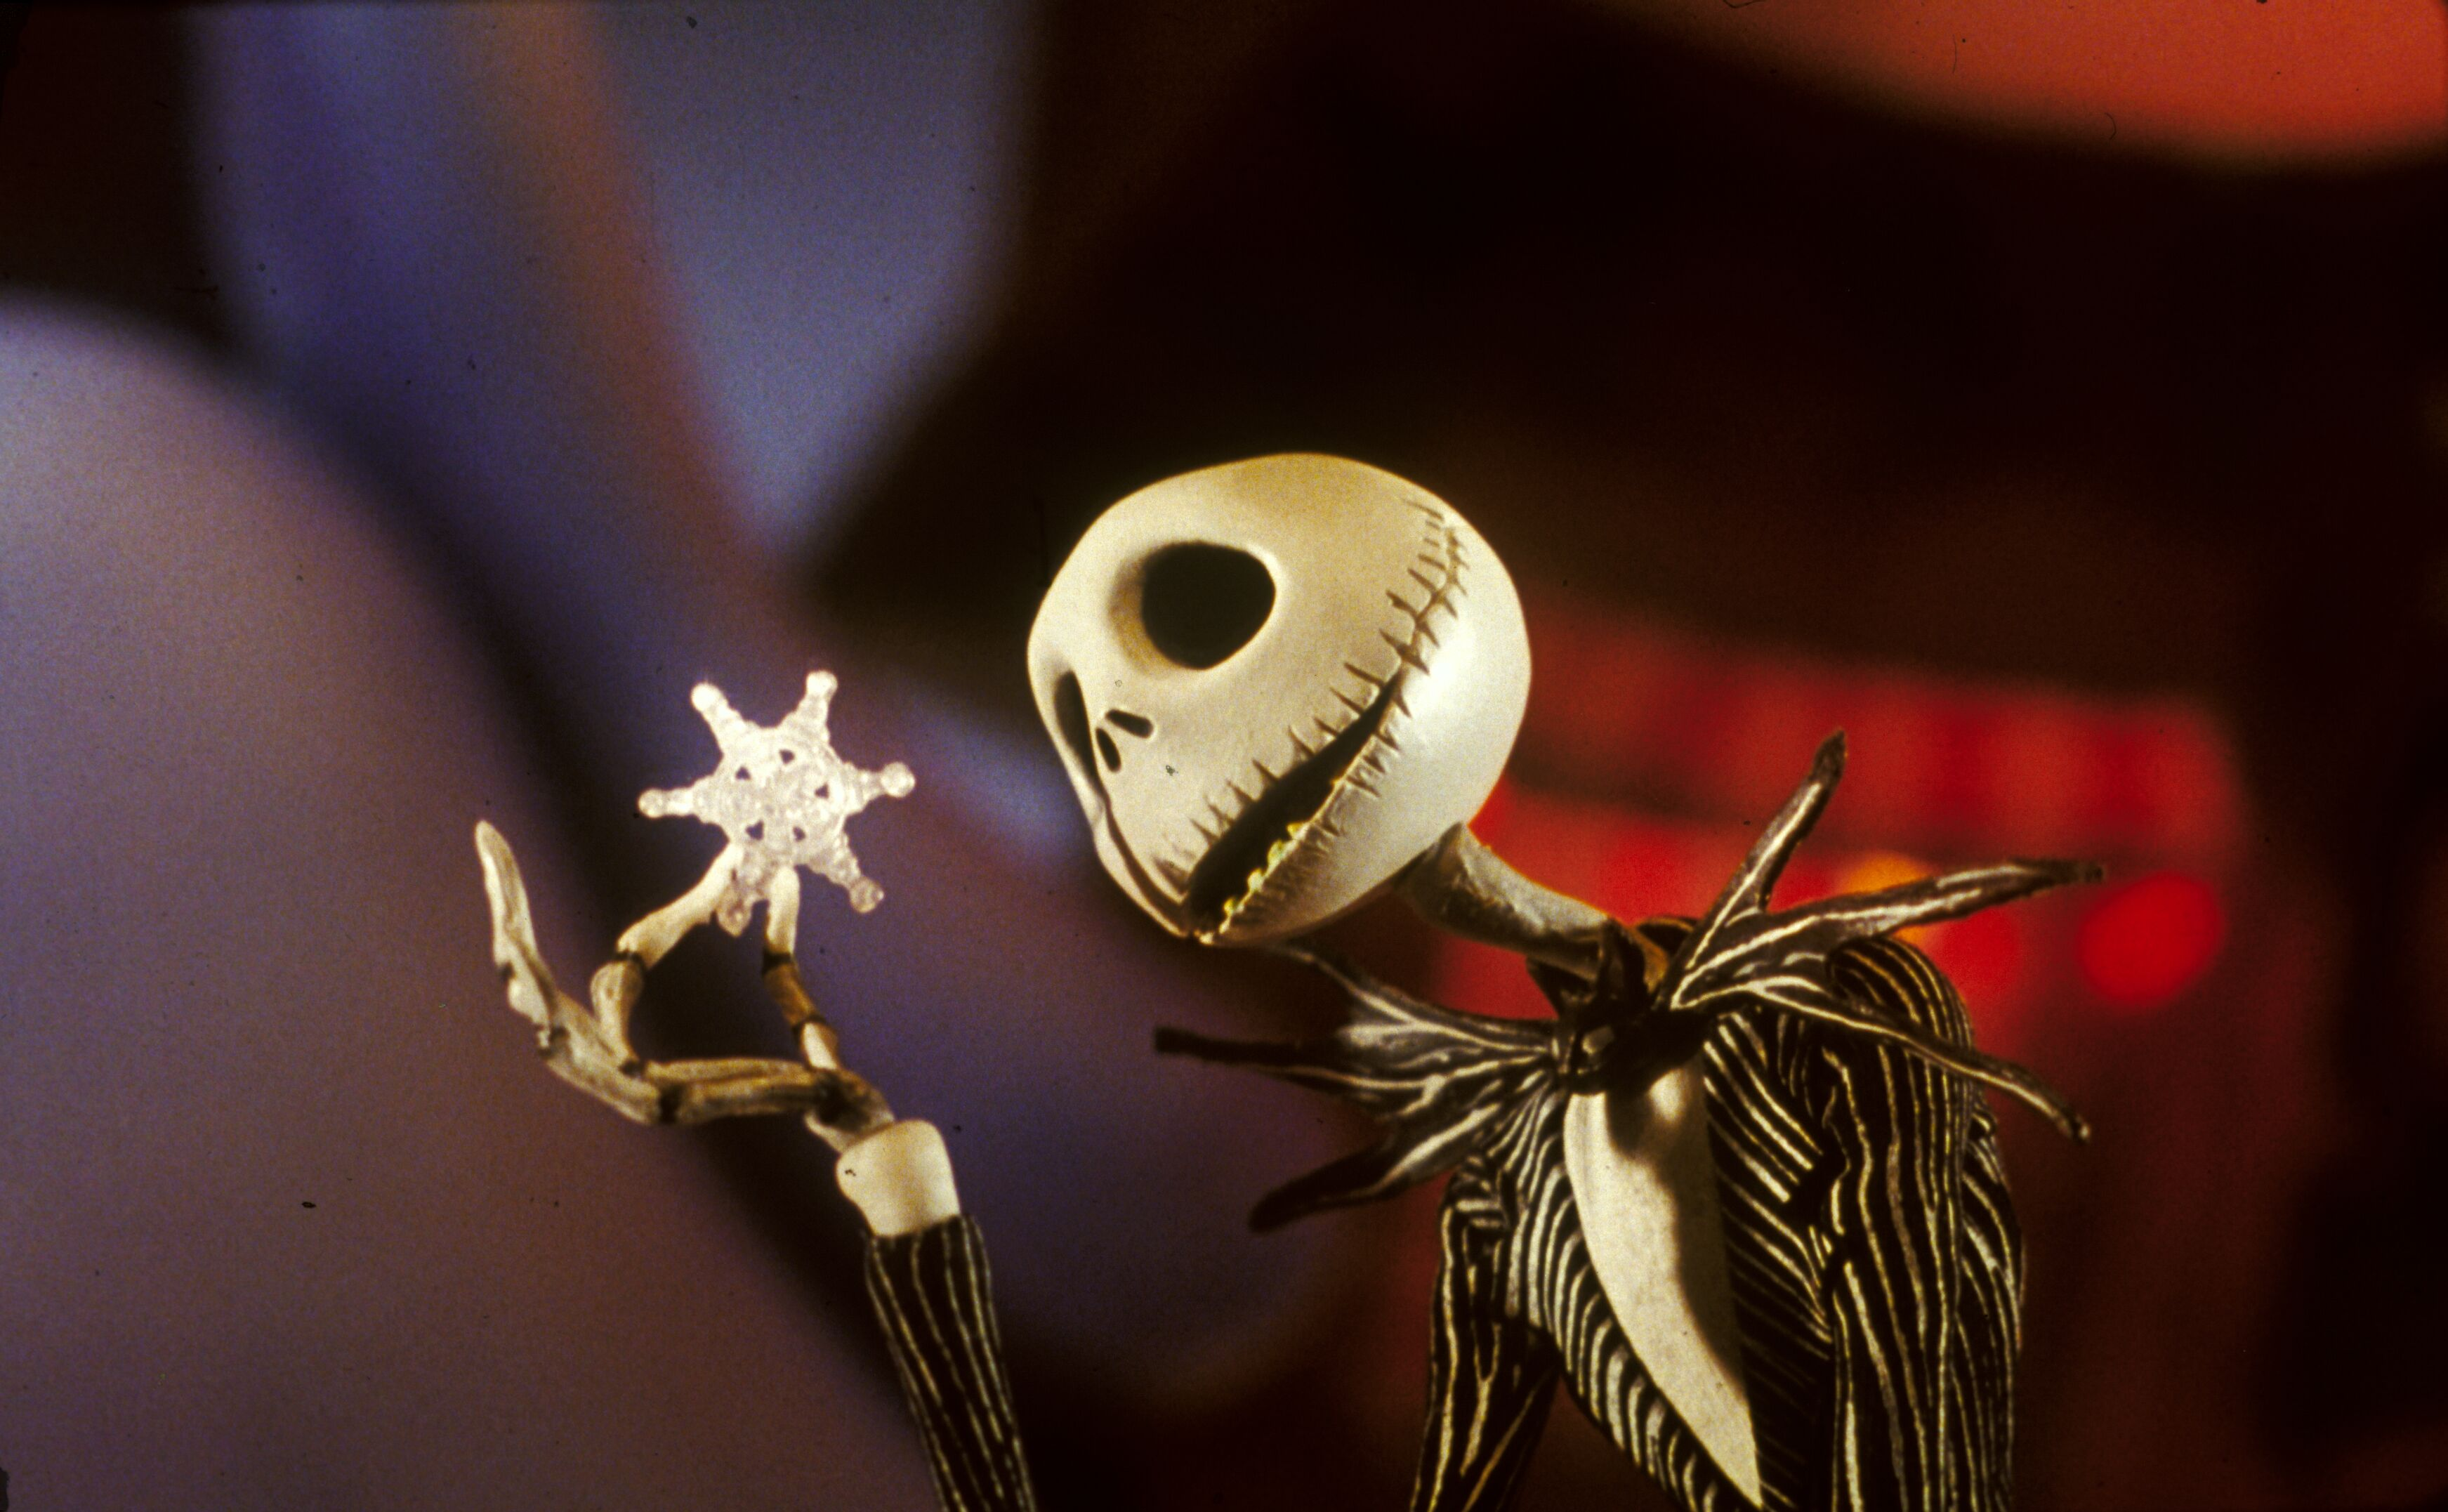 When can you watch The Nightmare Before Christmas on Freeform?